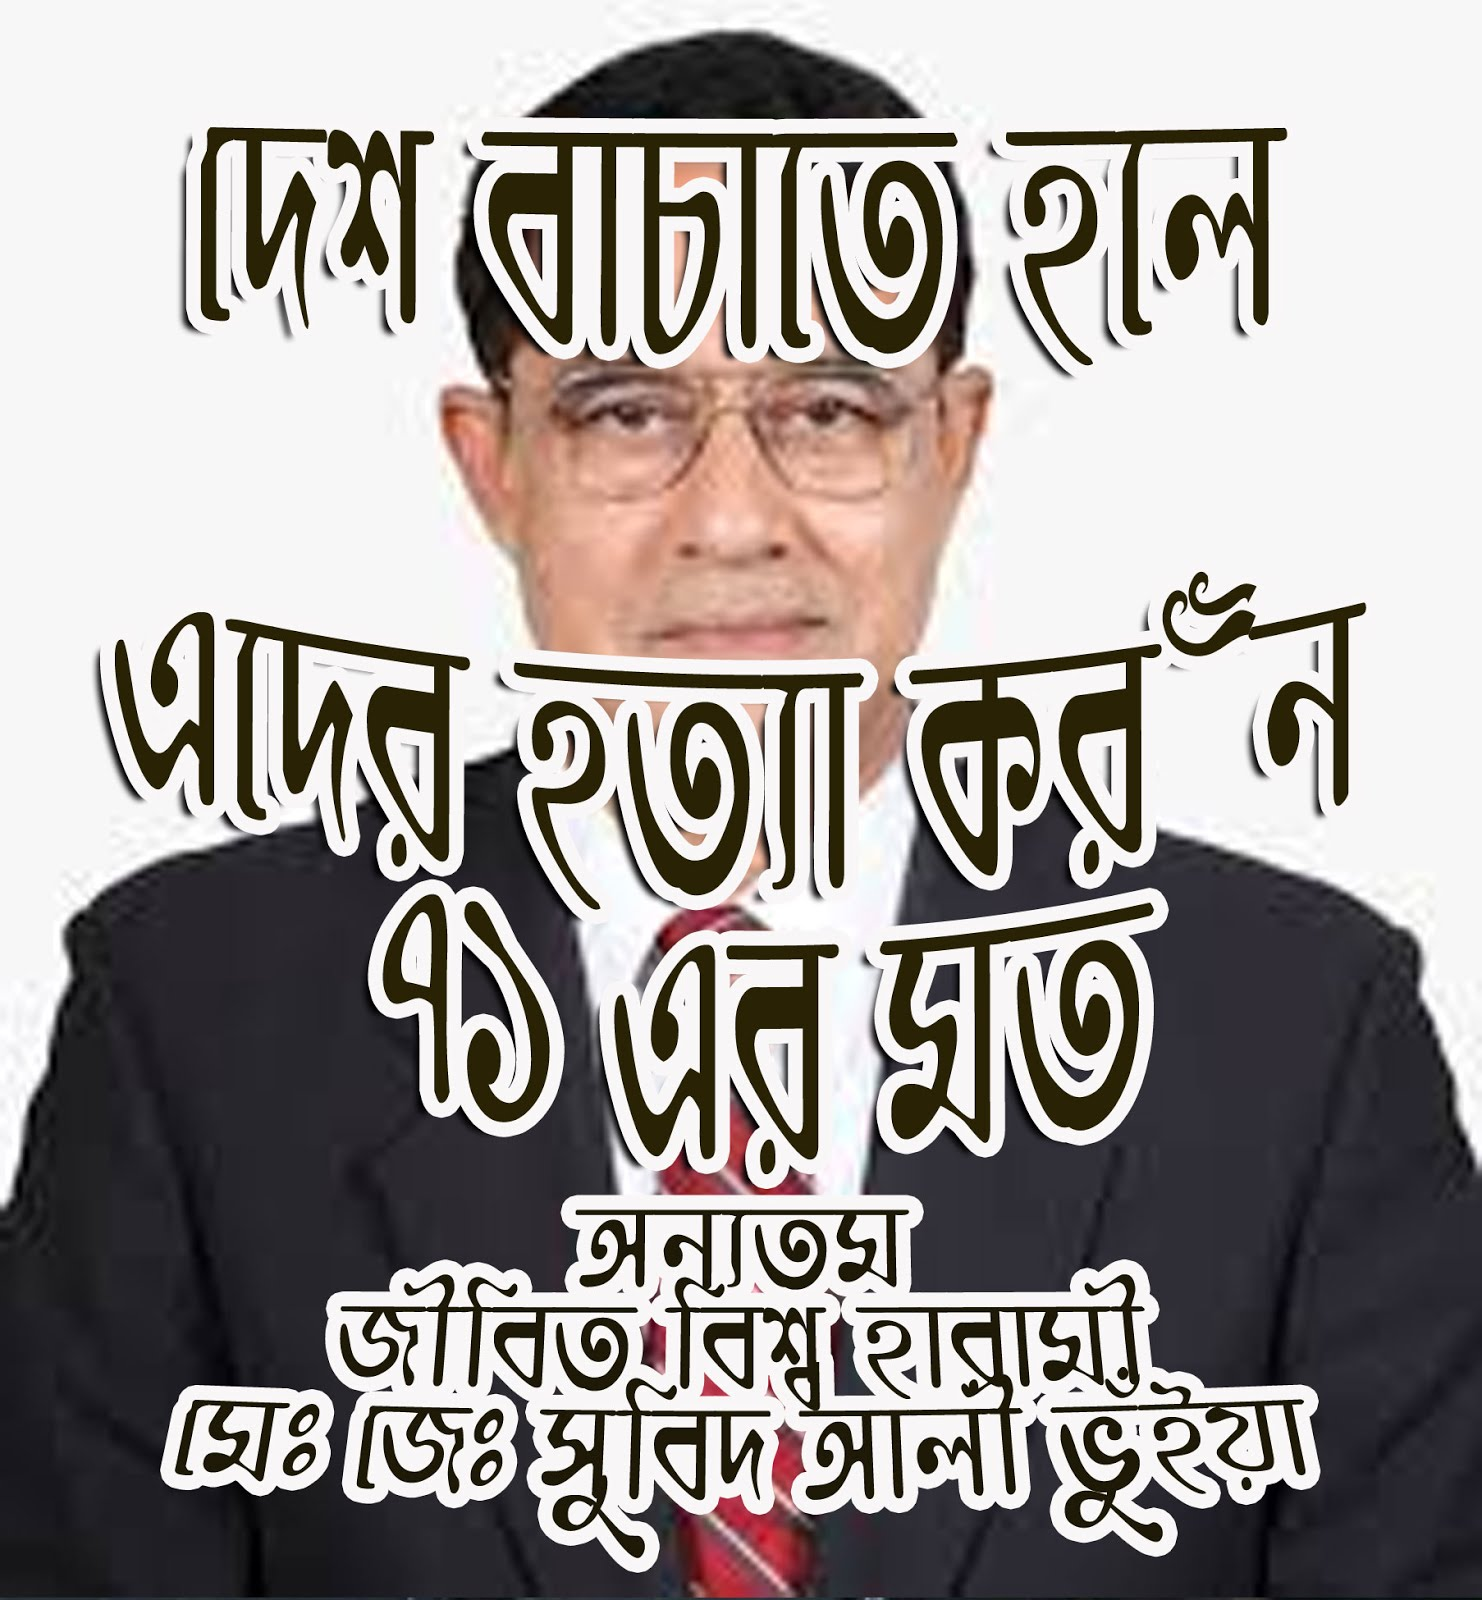 why bhuiyan in awami league?